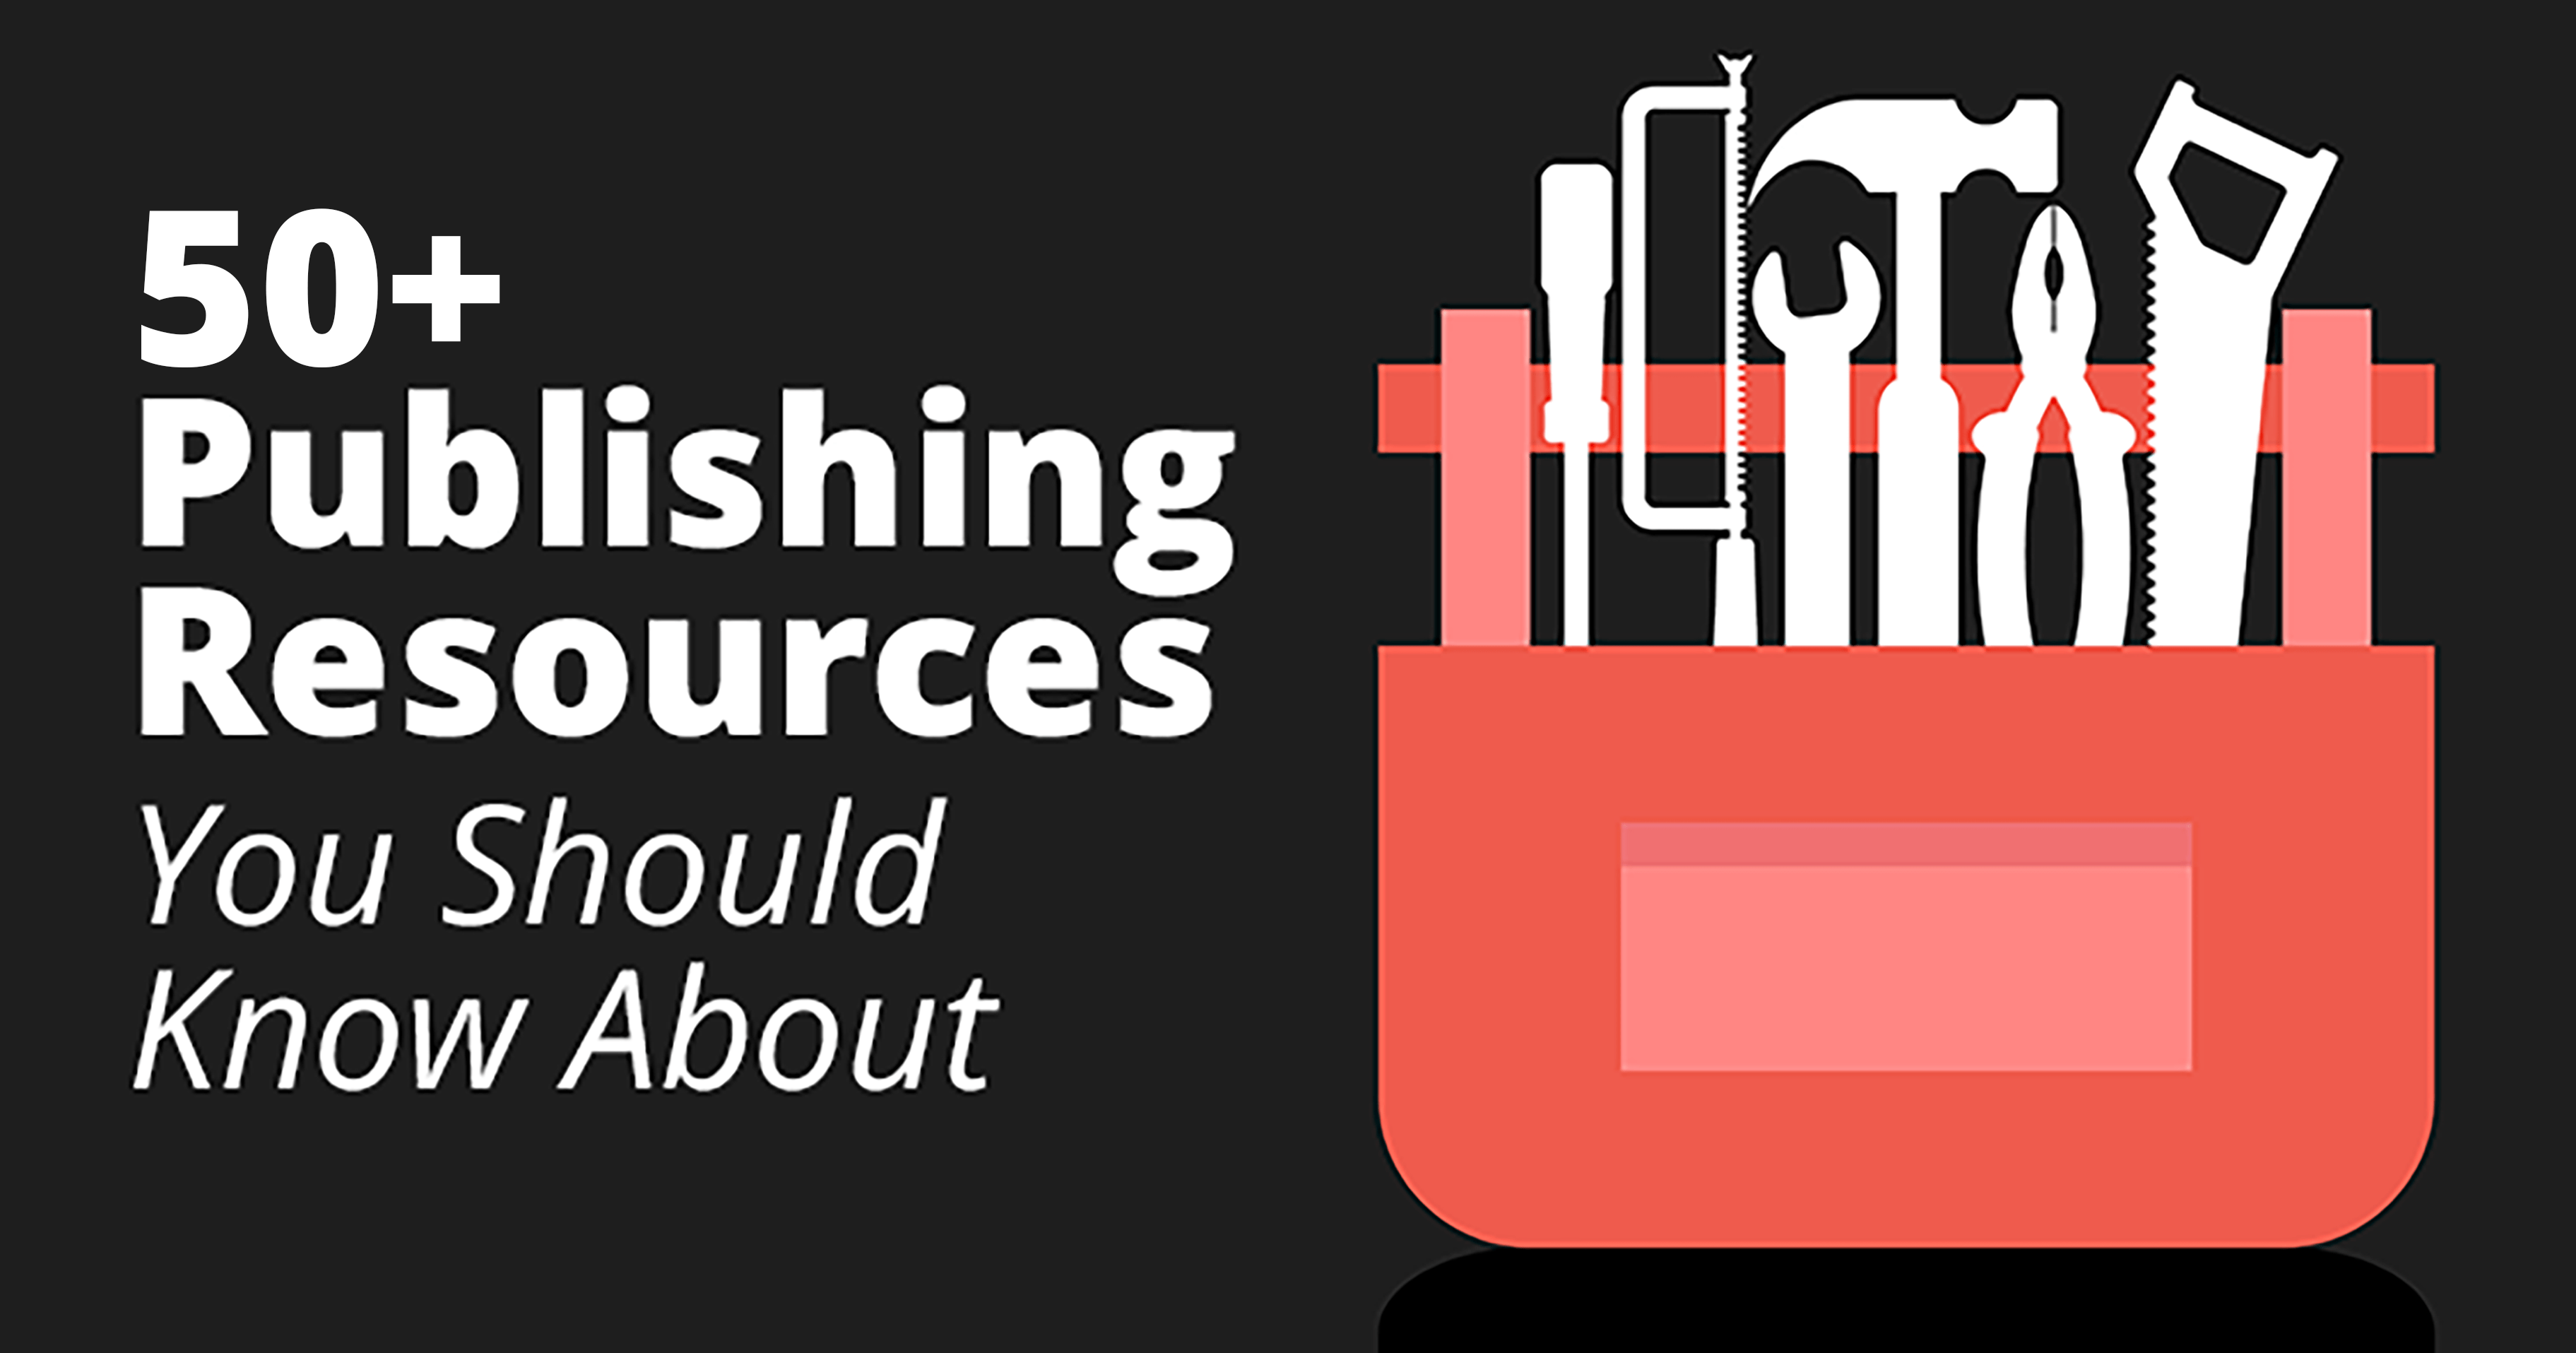 50+ Publishing Resources